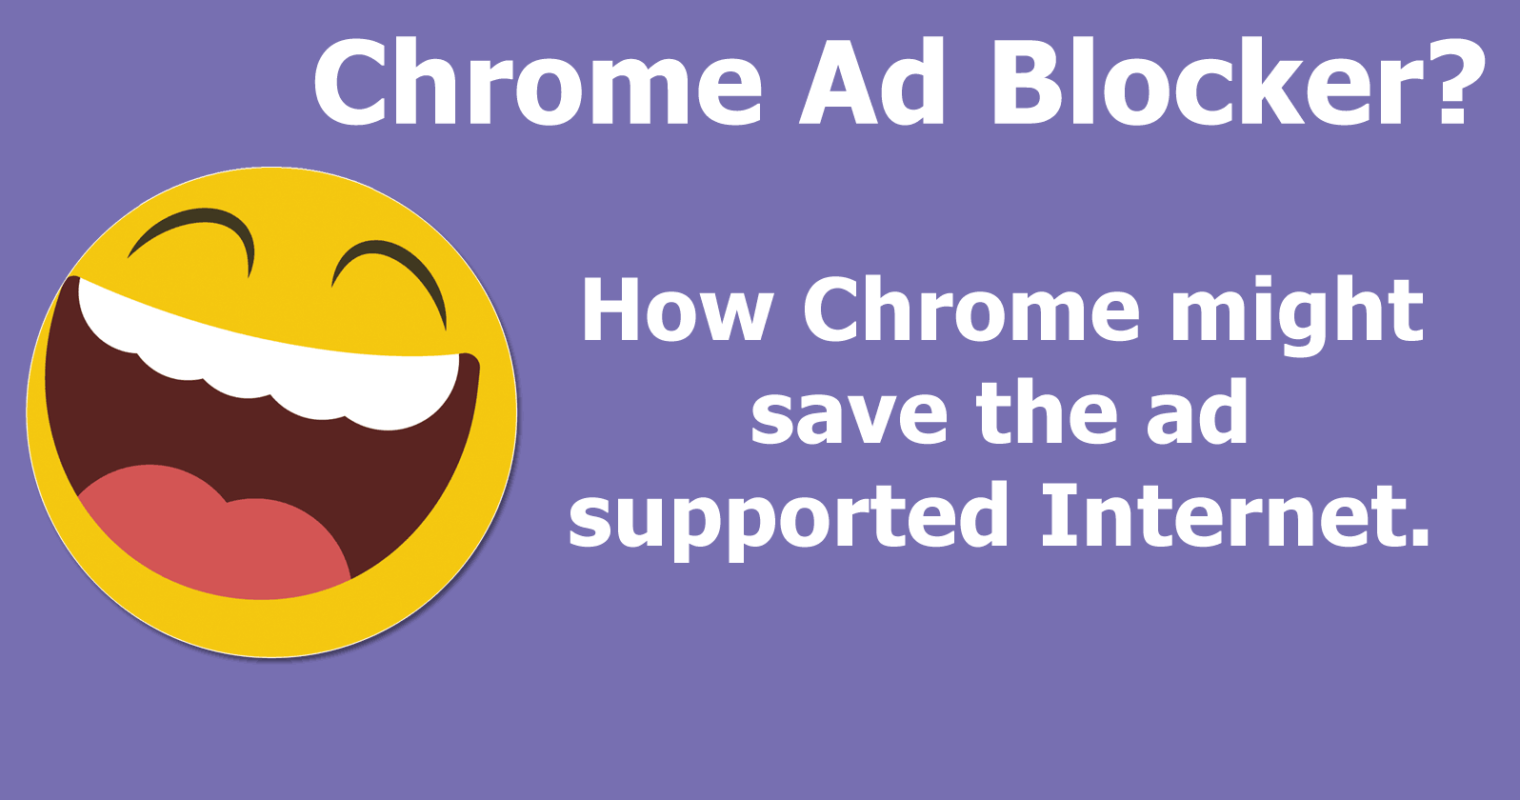 Google Chrome Begins Blocking Ads on Feb. 15